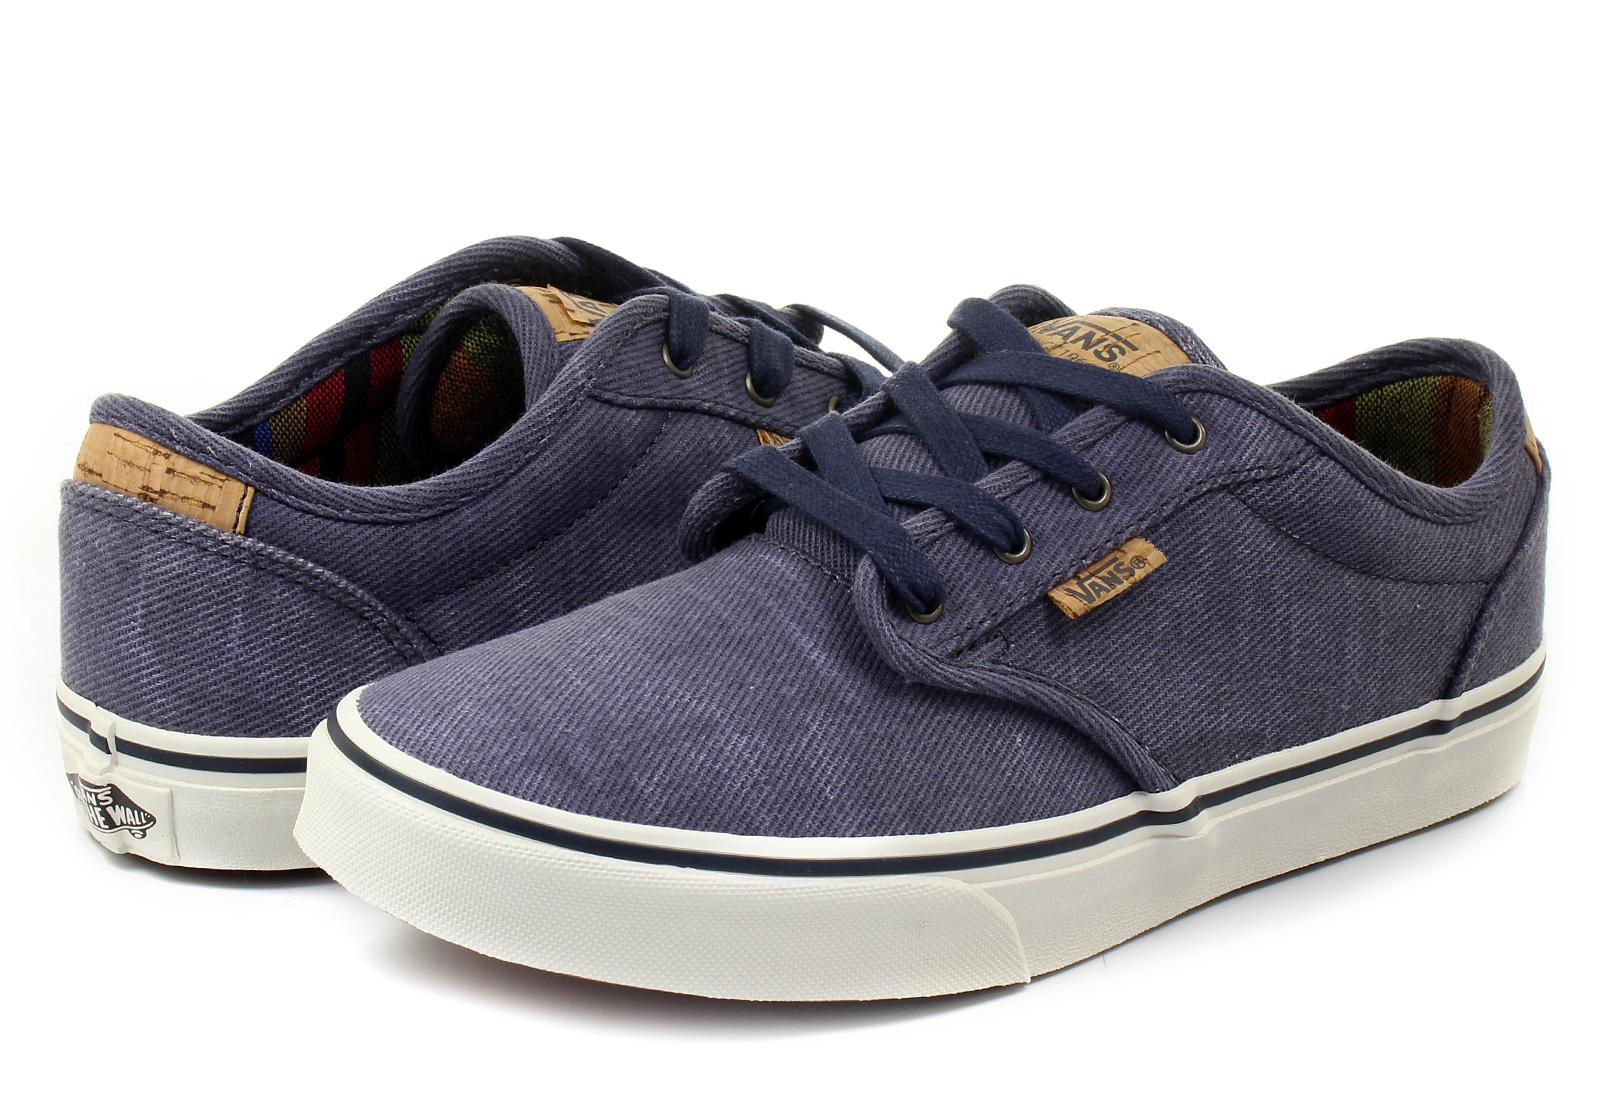 Buy Vans fine Shoes Cheap Atwood Discount Deluxe Online rtsCxhQd